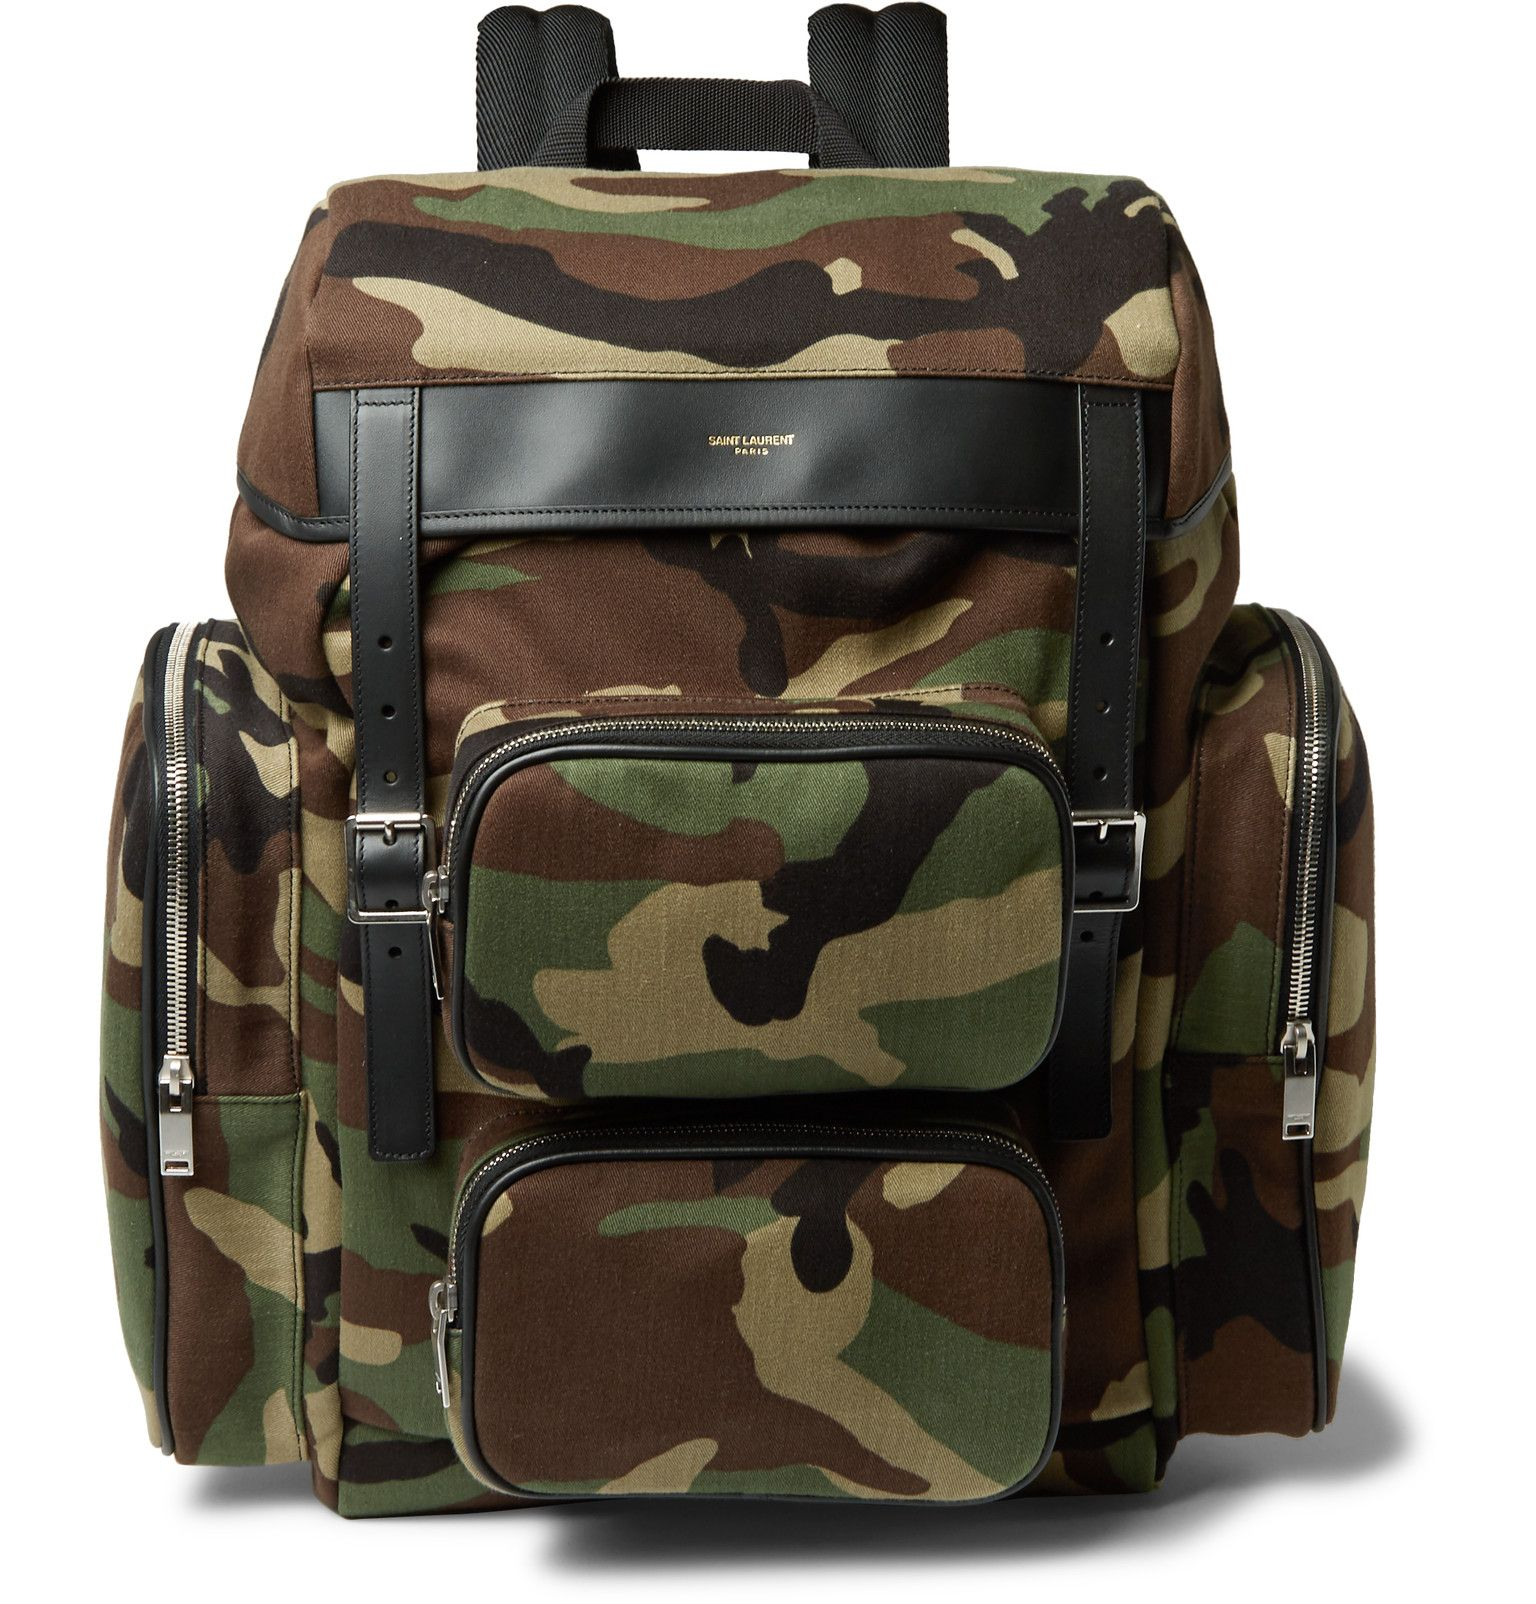 8a3b85cd2d Kitted with a multitude of pockets, Saint Laurent's camouflage-print  backpack has utilitarian appeal. Made from tough canvas, it's detailed with  ...